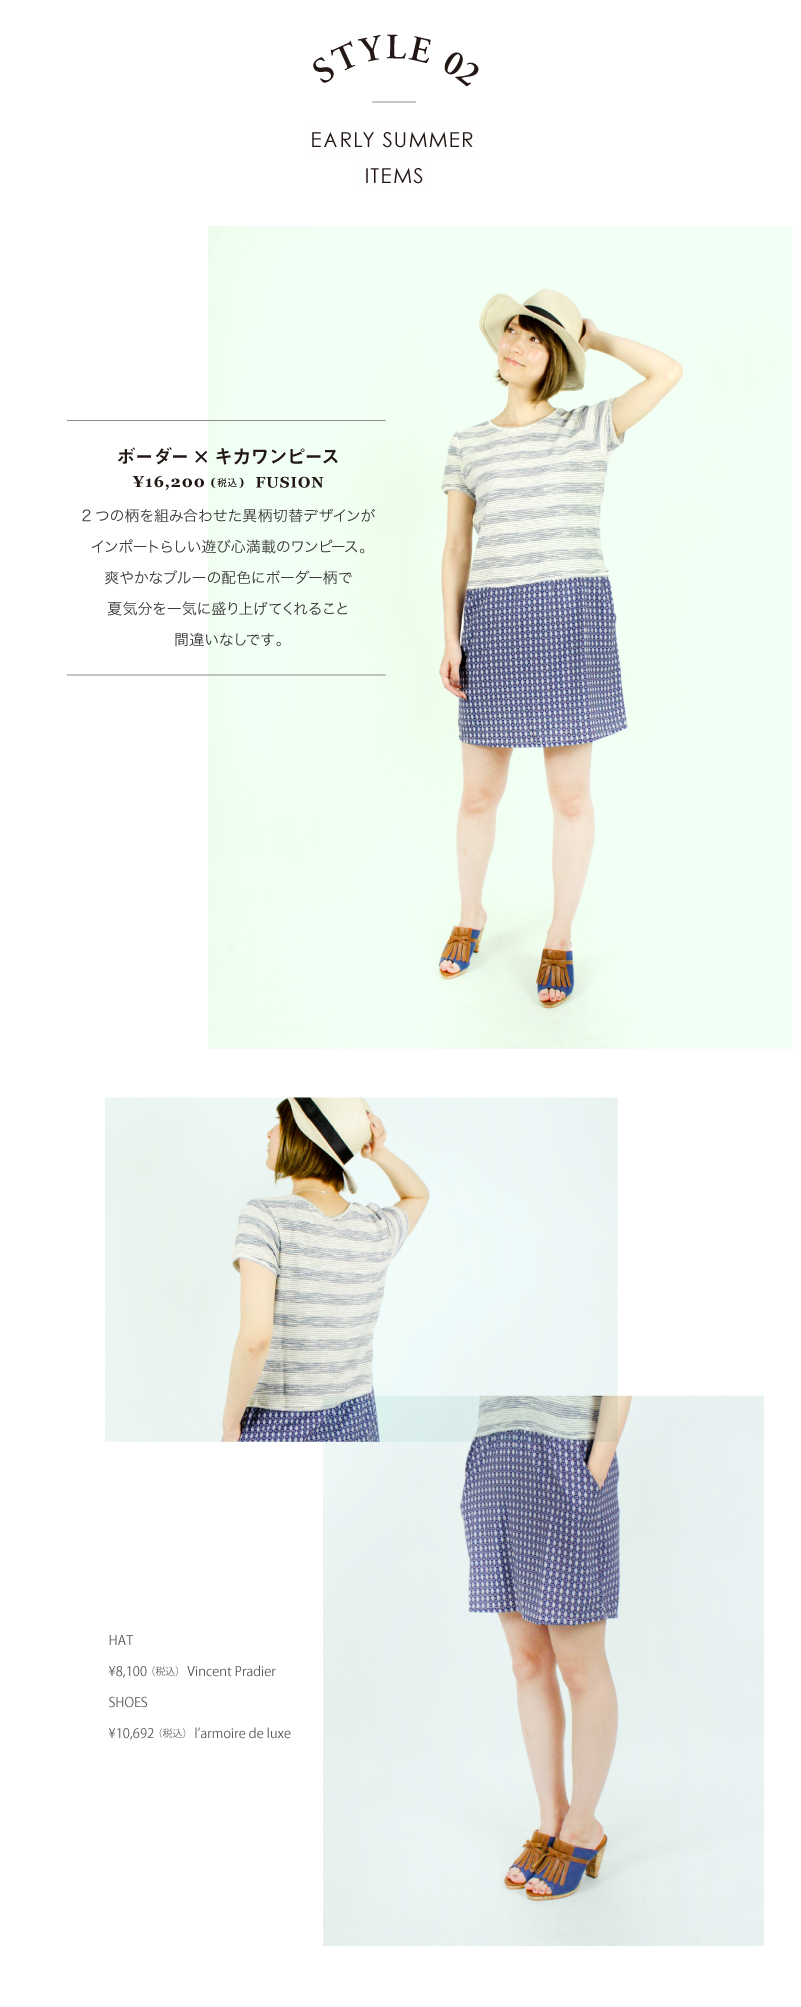 ac-RC_160512_earlysummer-item_vol1_10.png